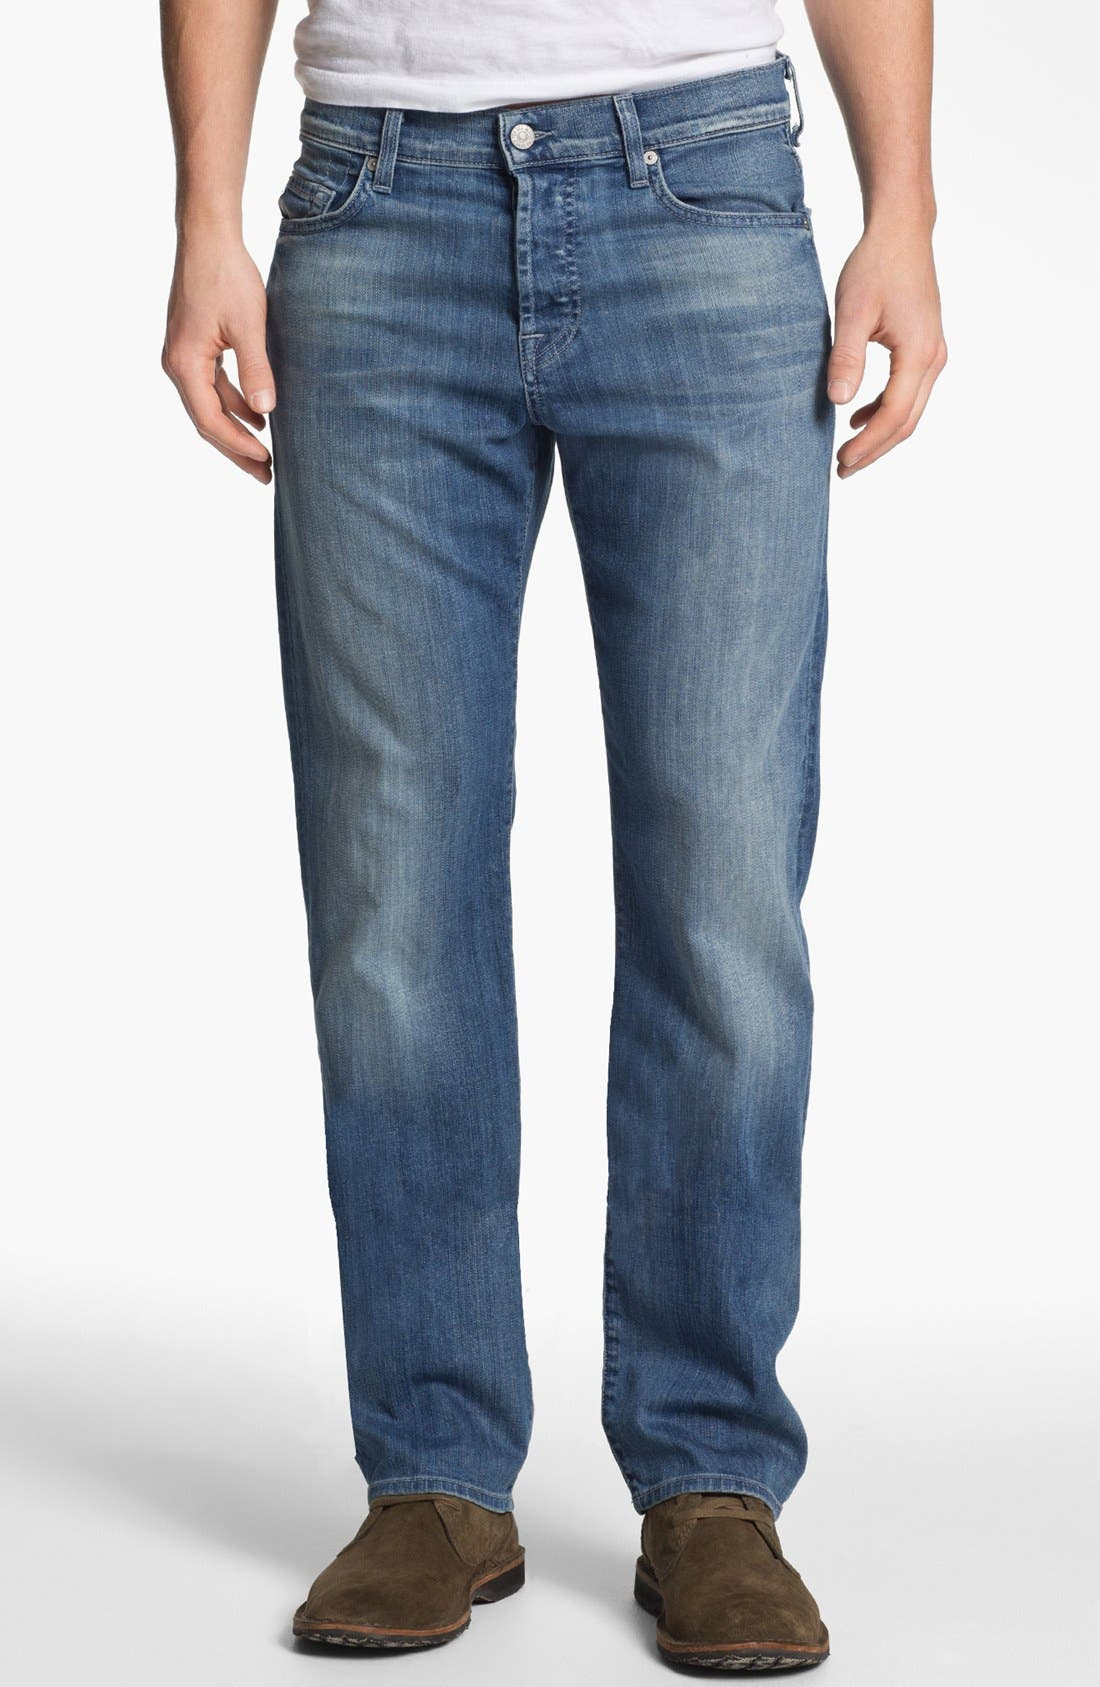 Alternate Image 1 Selected - 7 For All Mankind® 'Standard' Straight Leg Jeans (Washed Out)